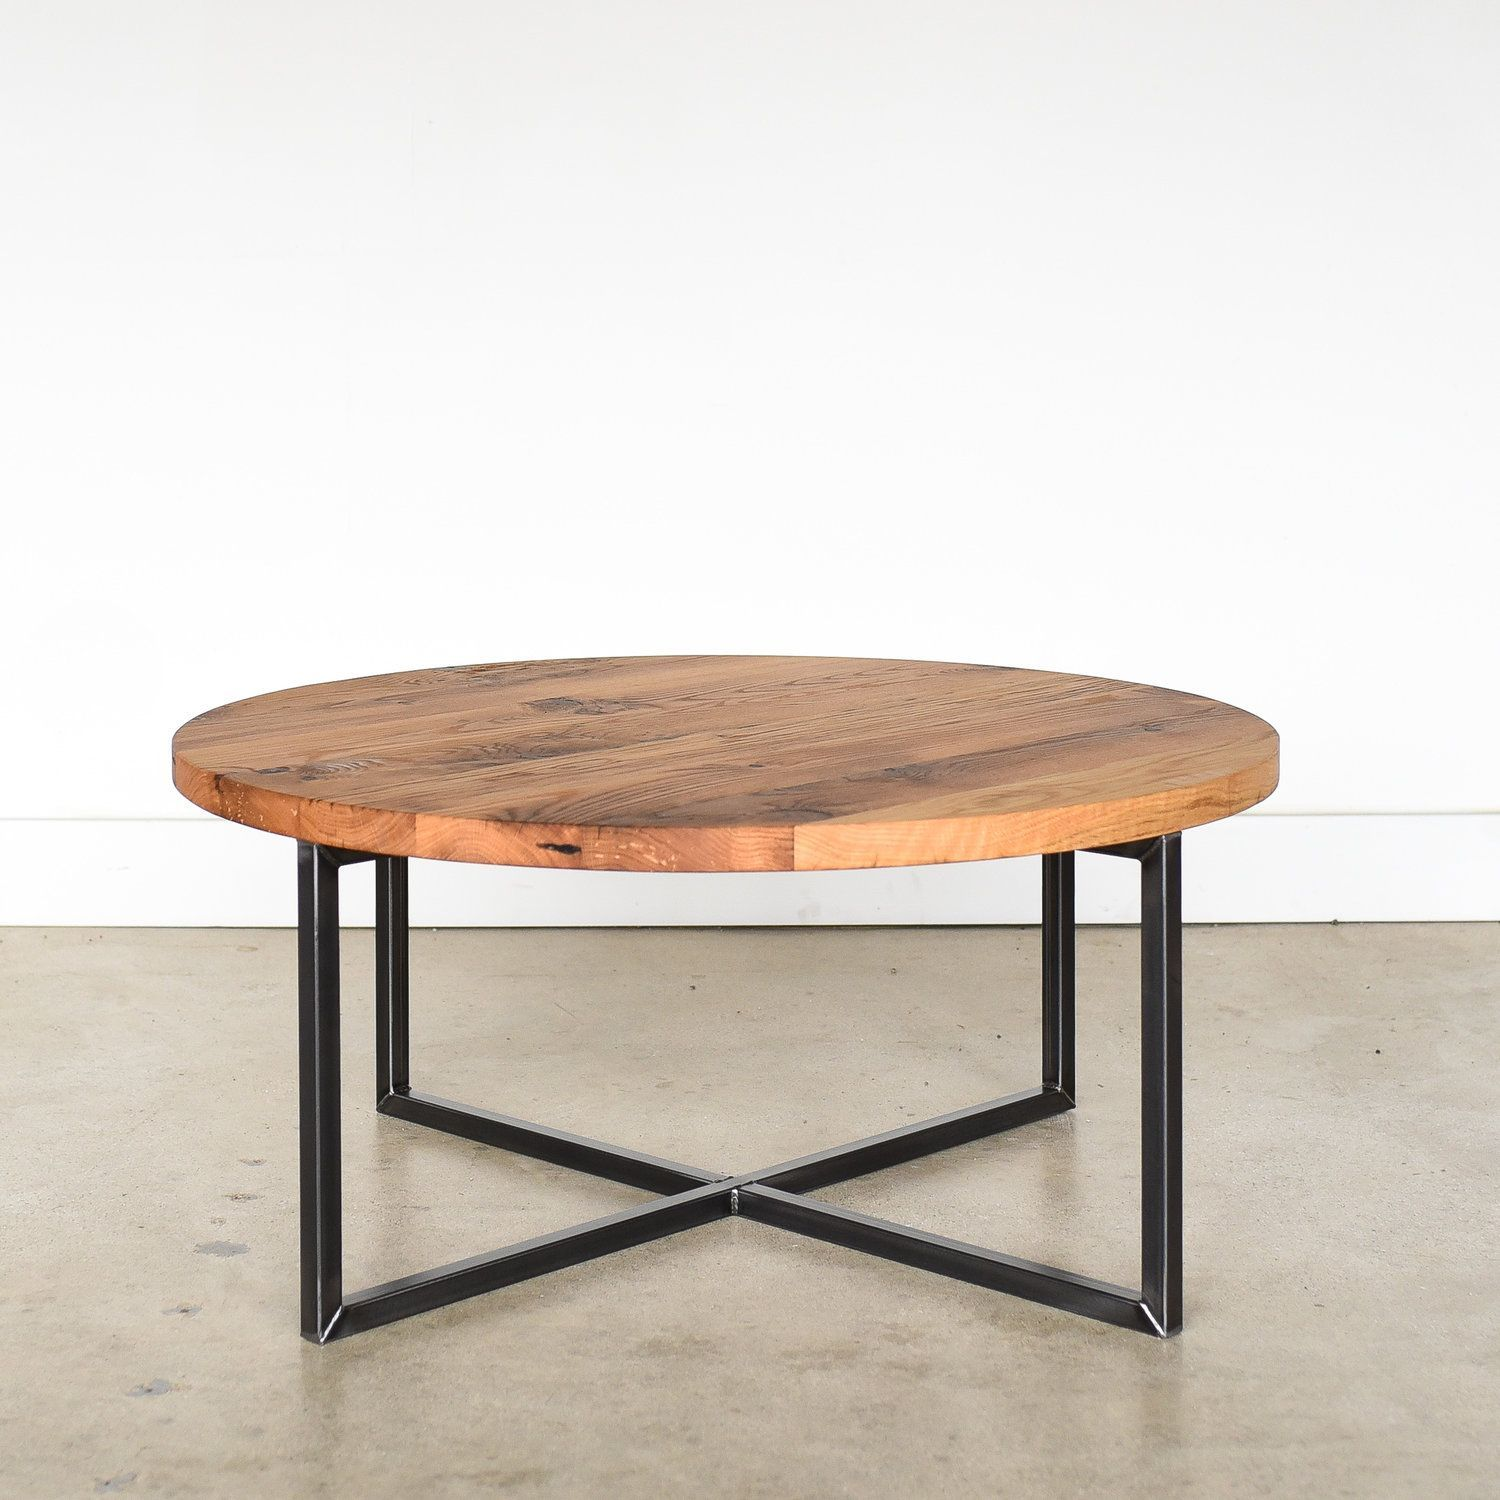 Round Modern Reclaimed Coffee Table What We Make Round Wood Coffee Table Wood Coffee Table Design Reclaimed Wood Coffee Table [ 1500 x 1500 Pixel ]